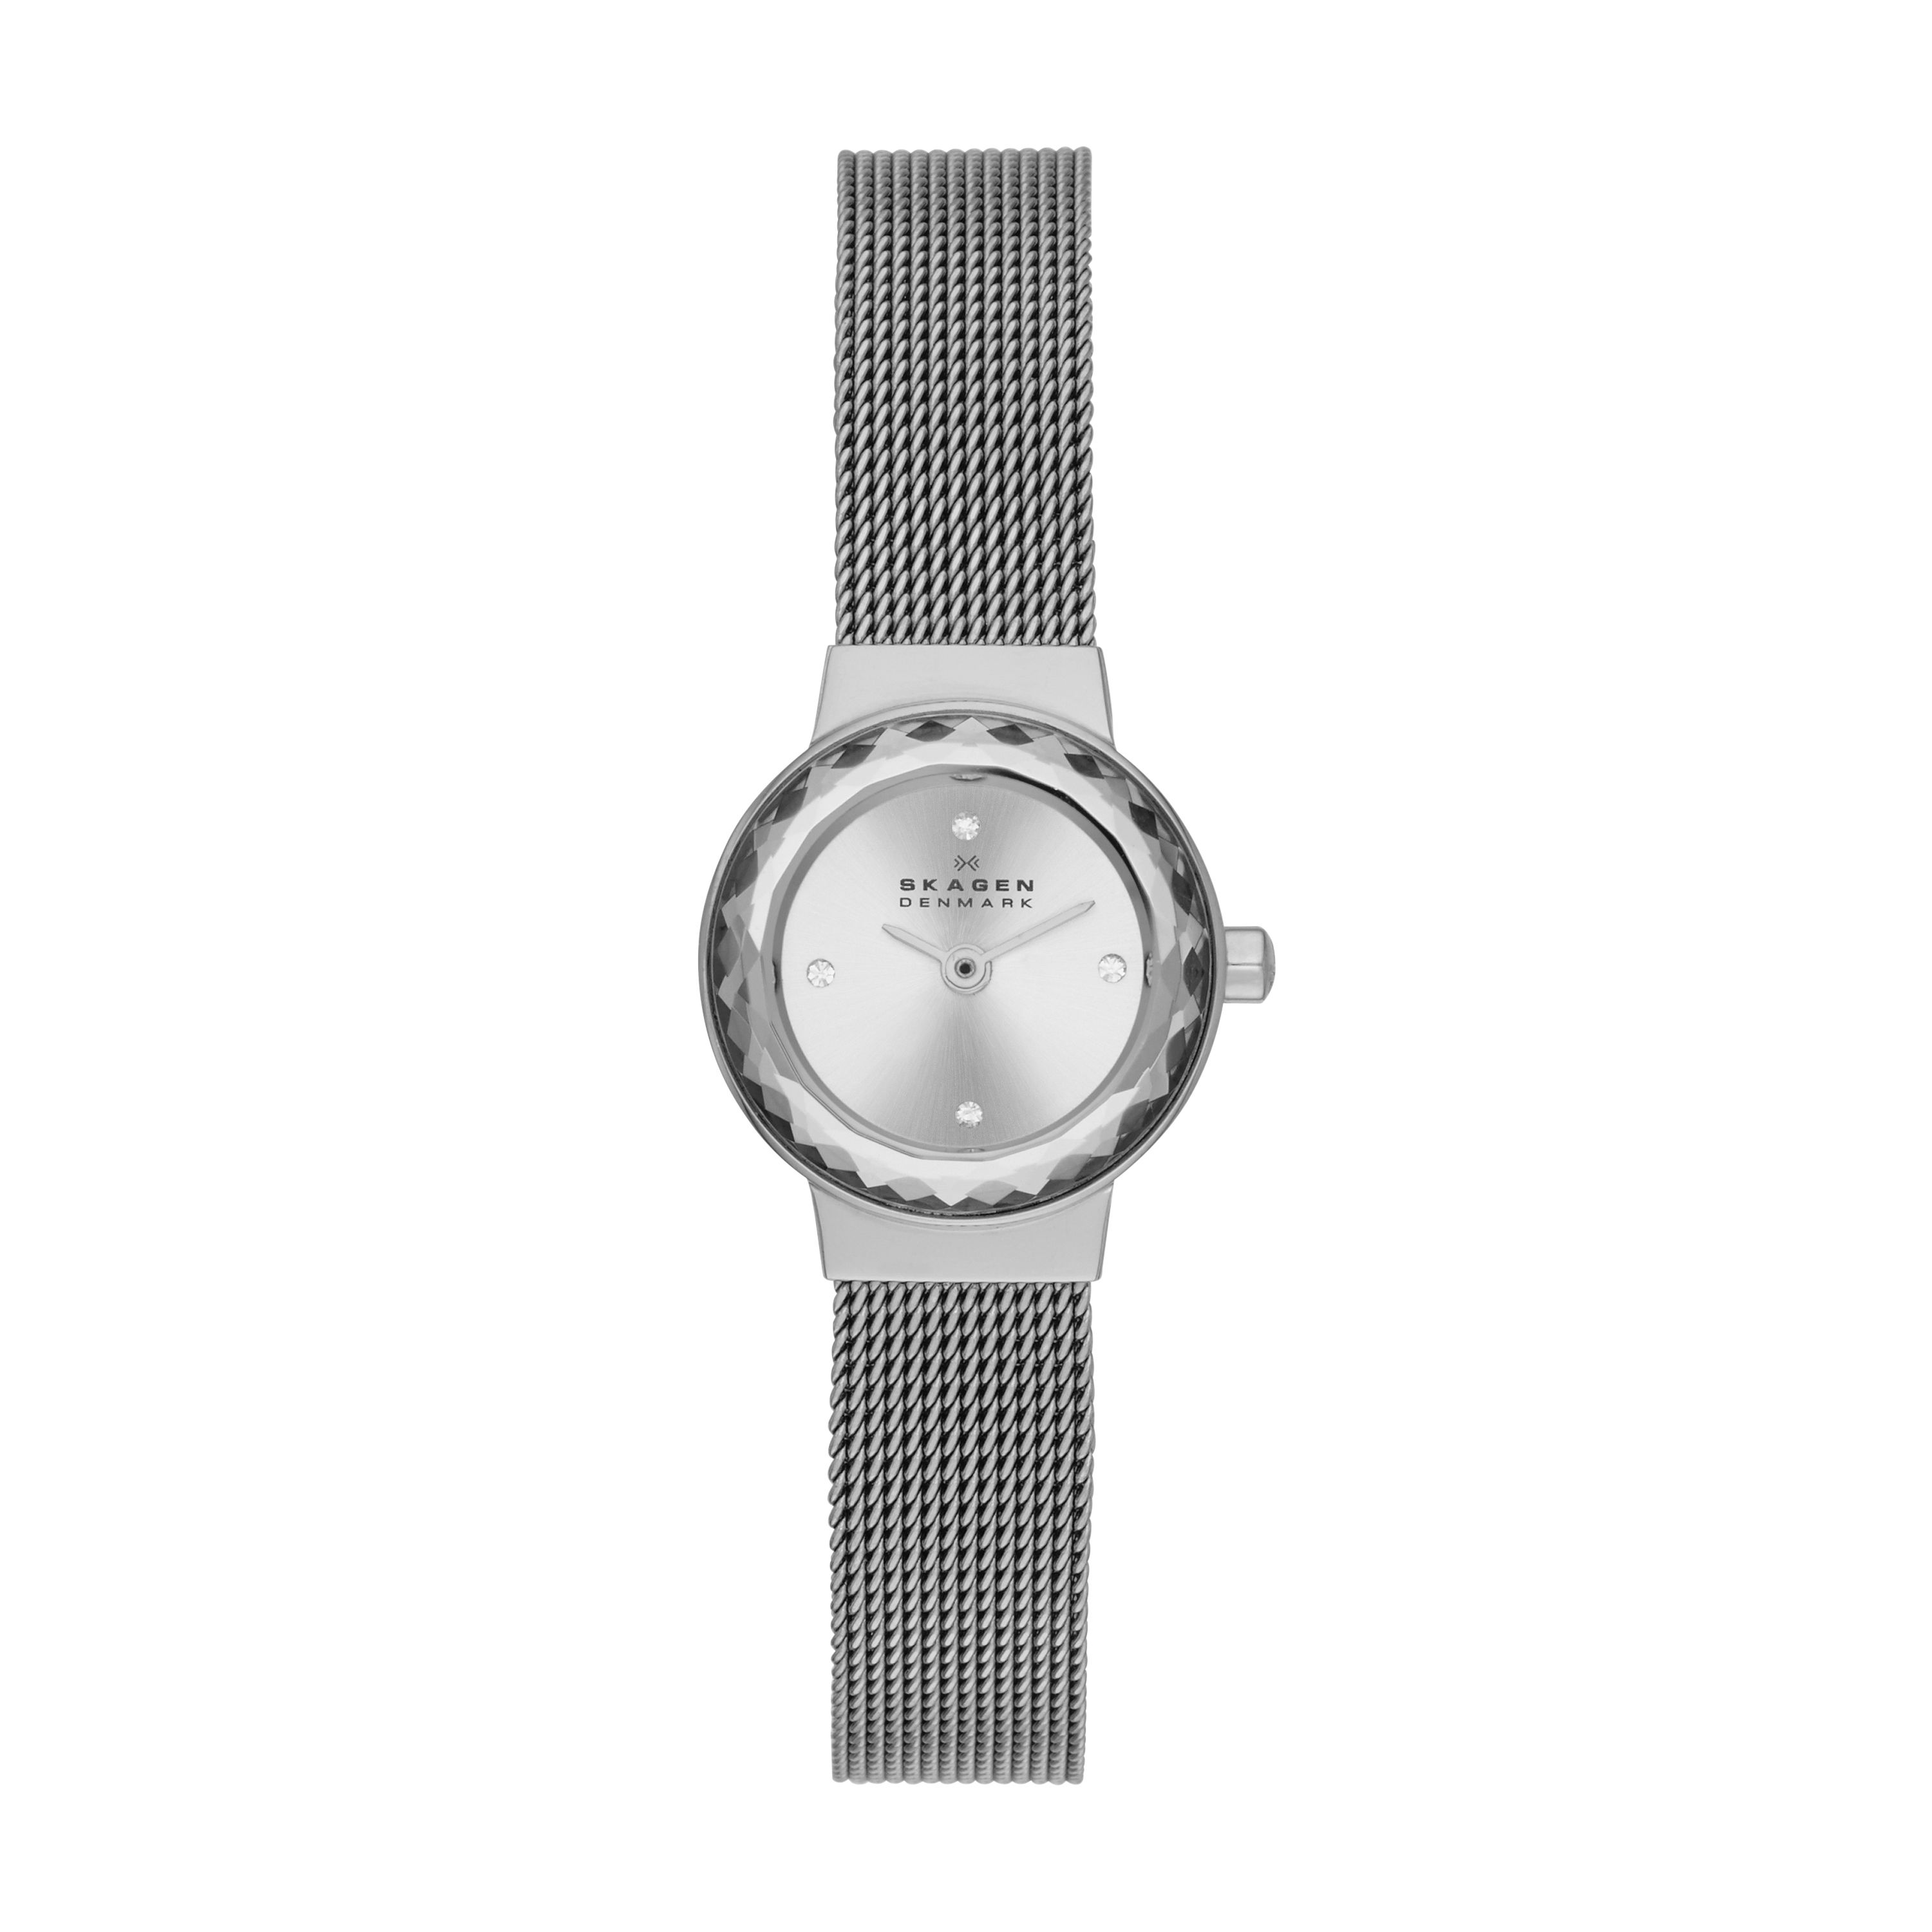 SKW2184 Leonora silver mesh ladies bracelet watch